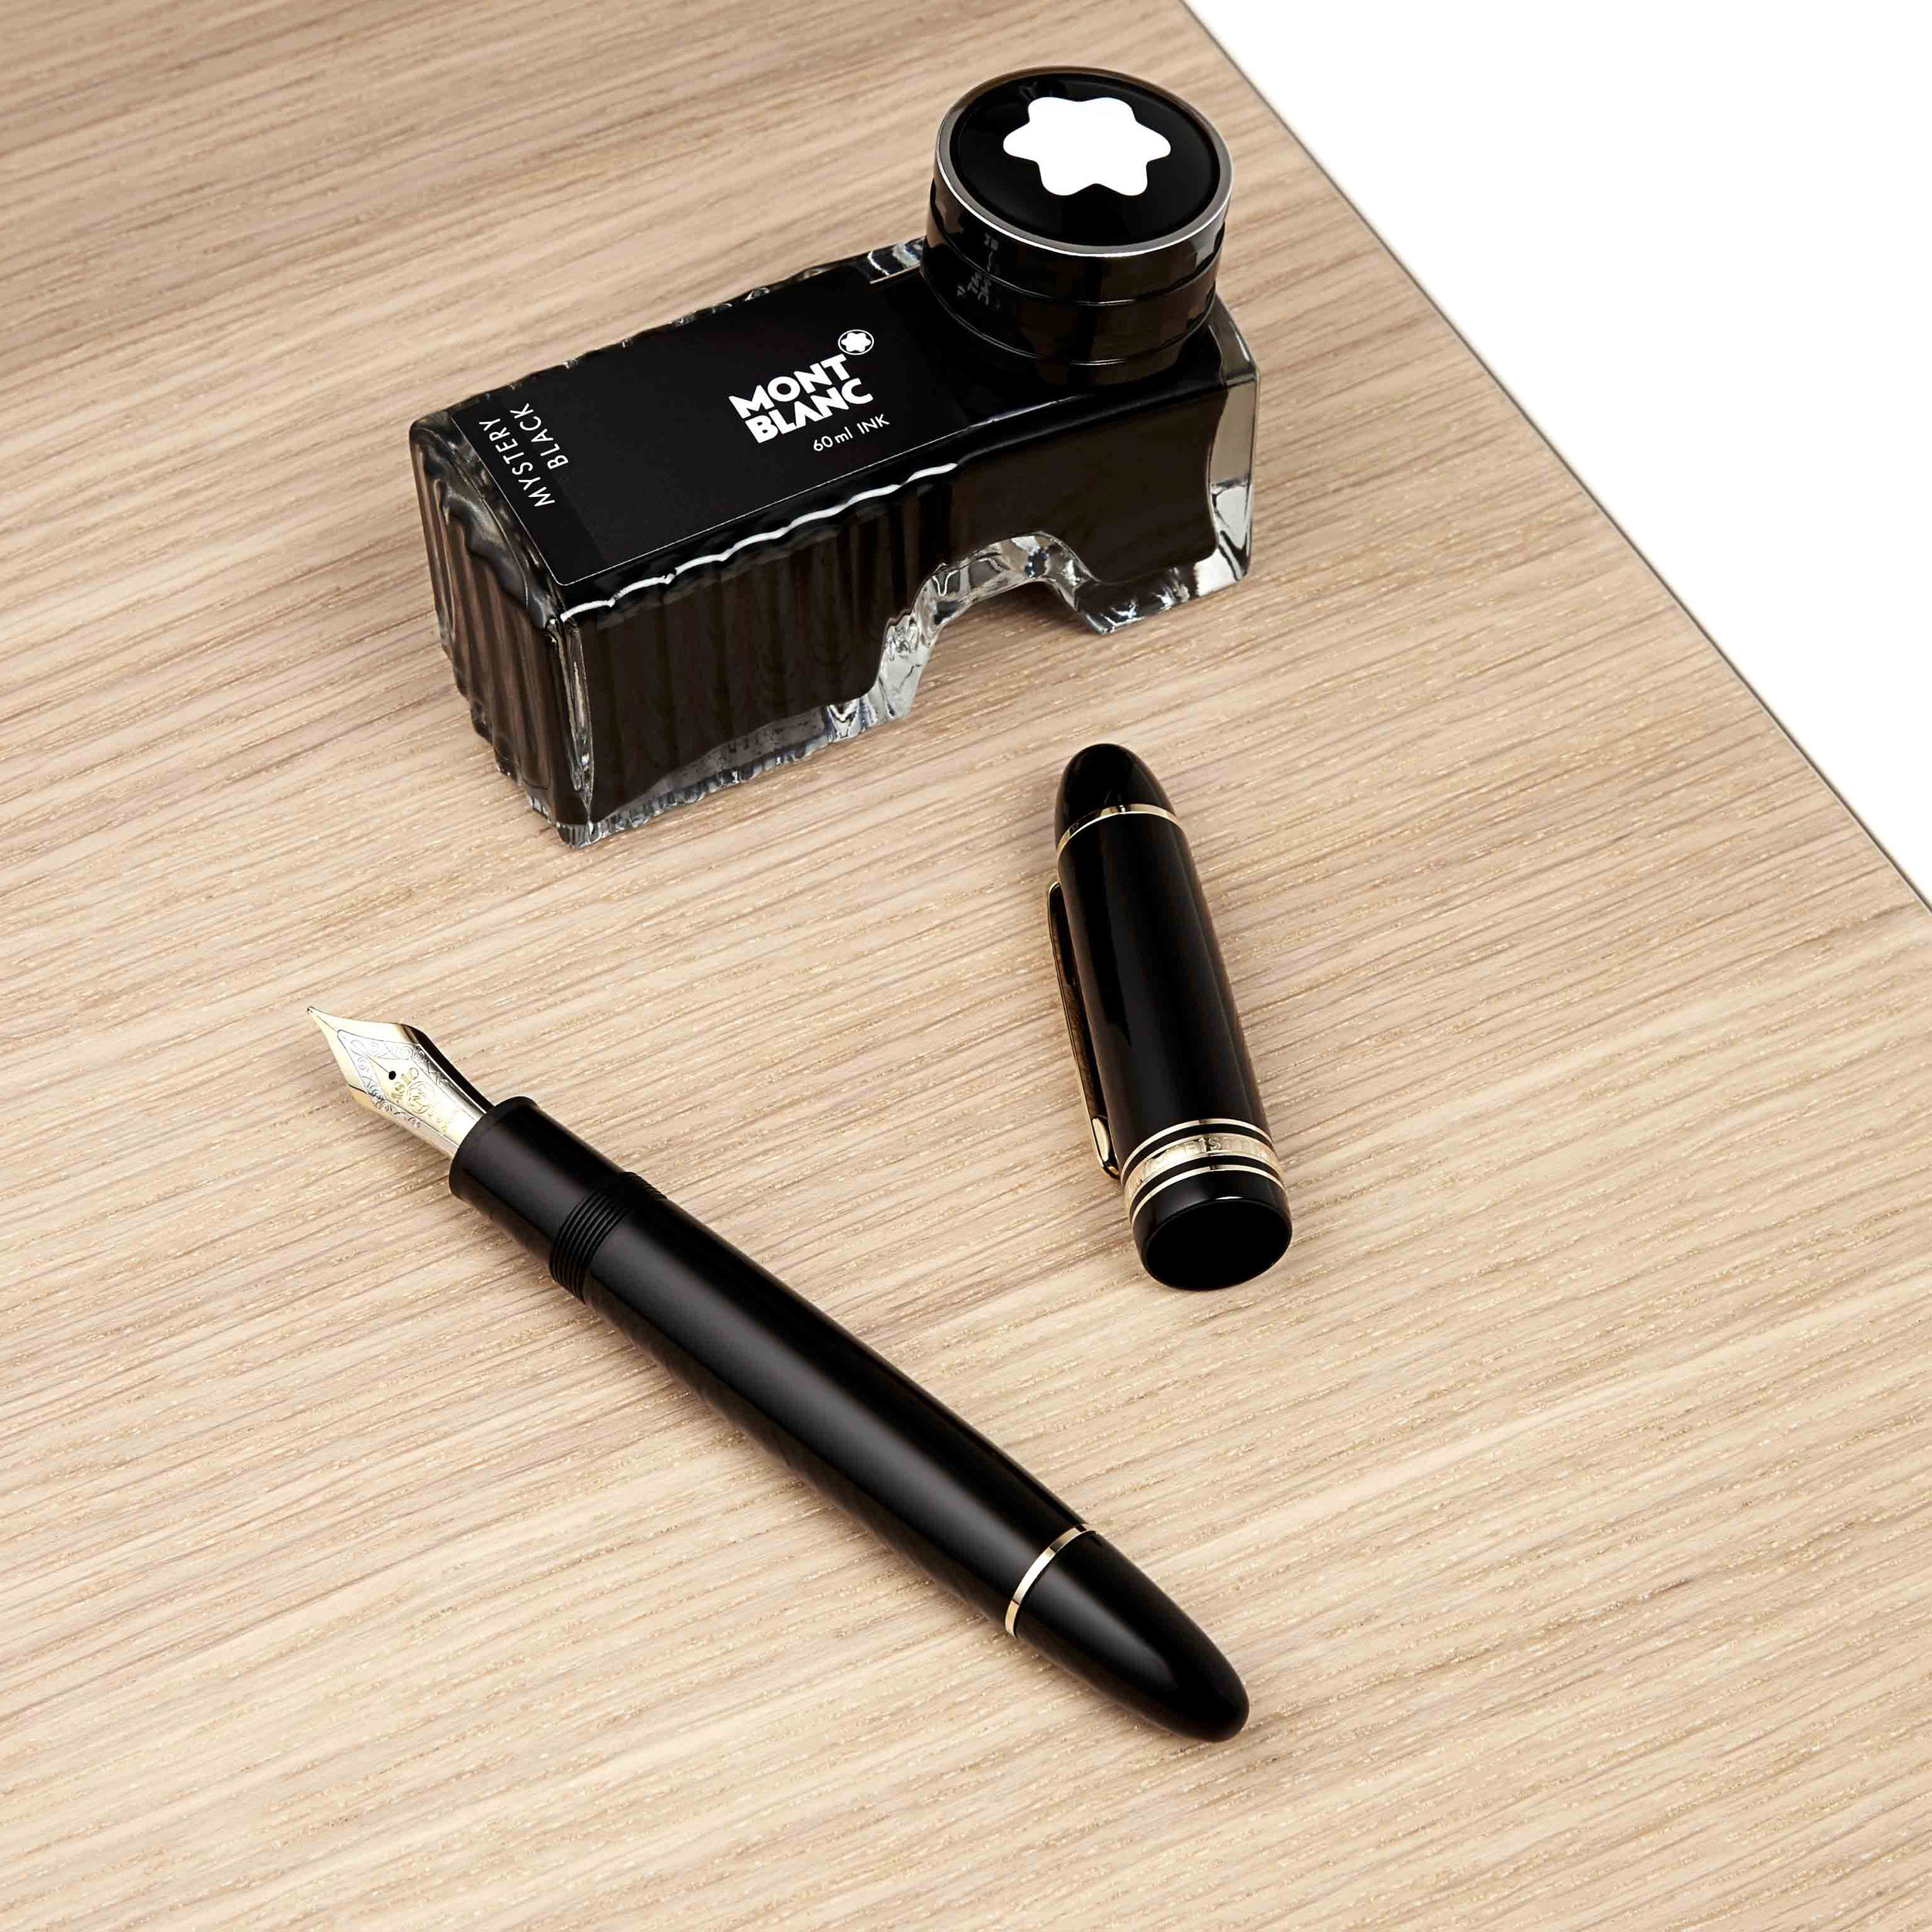 Mont Blanc Meisterstuck fountain pen